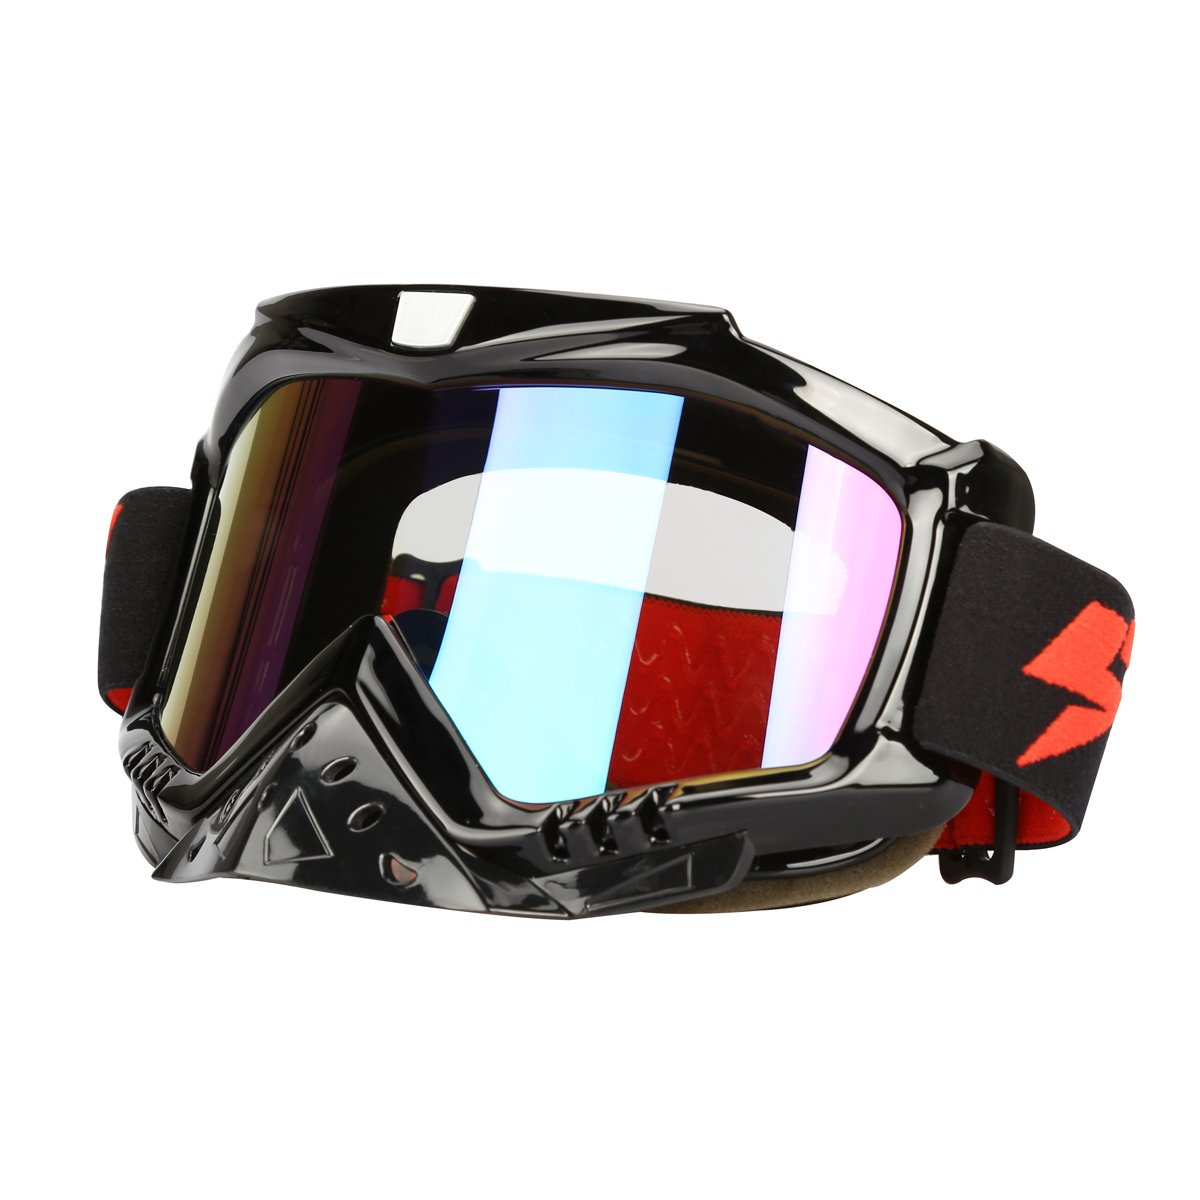 G4Free-ATV-Goggles-Dirt-Bike-Off-Road-Screen-Filter-Motocross-Motorcycle-Motorbike-Safety-Glasses-Anti-UV-Anti-Scratch-Dustproof-Windproof-Cycling-Racing-Riding-Skiing-for-Men-Women-Kids-Adults